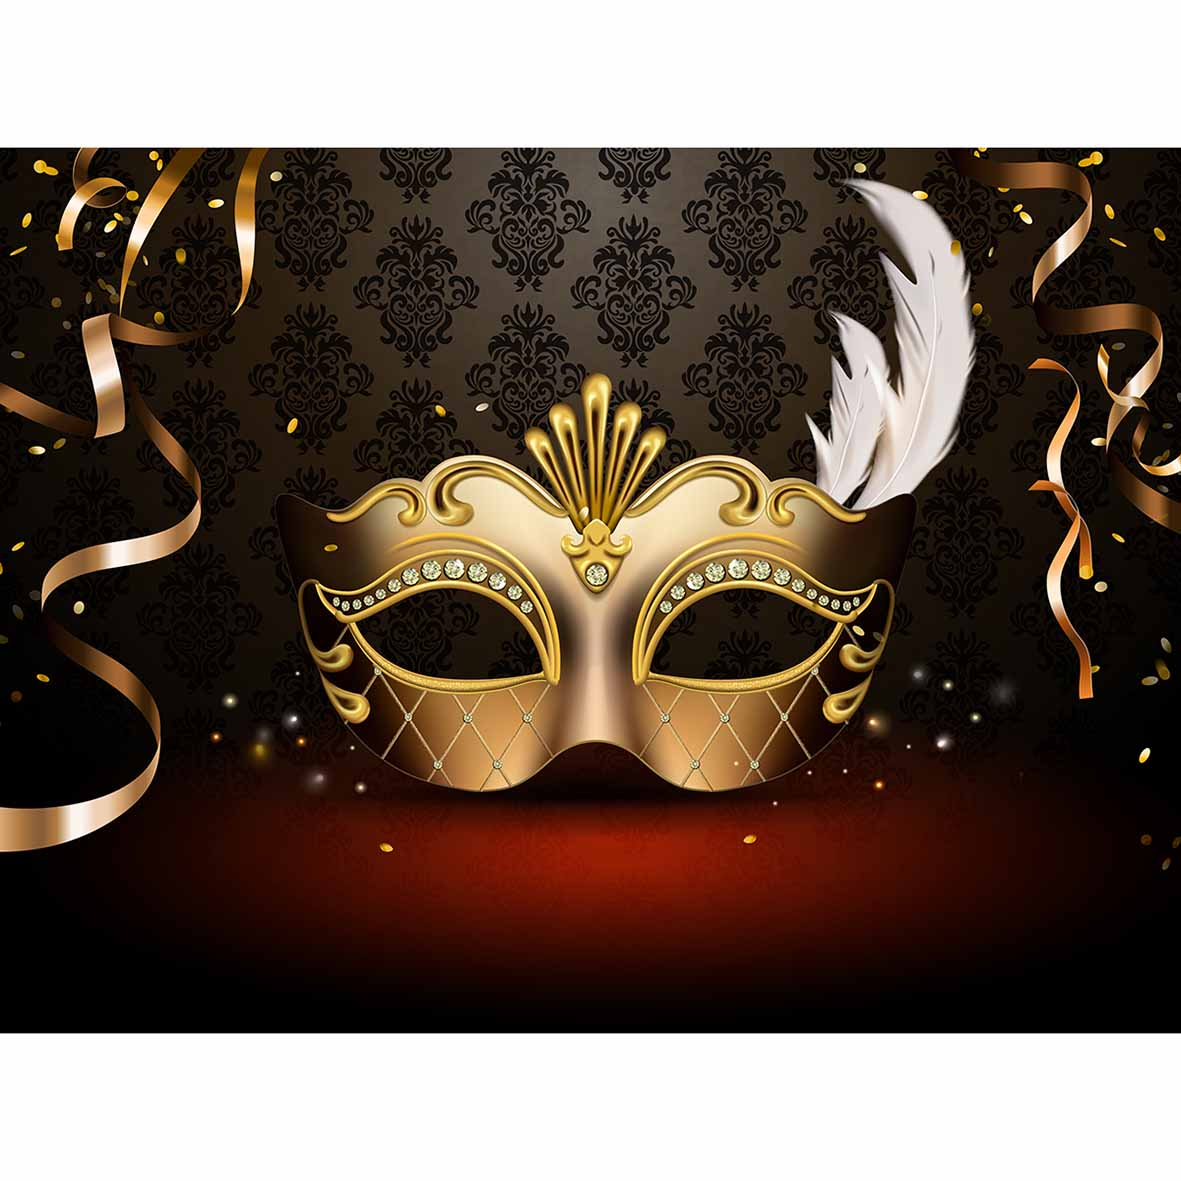 Funnytree backgrounds for photography studio masquerade party 1181x1181